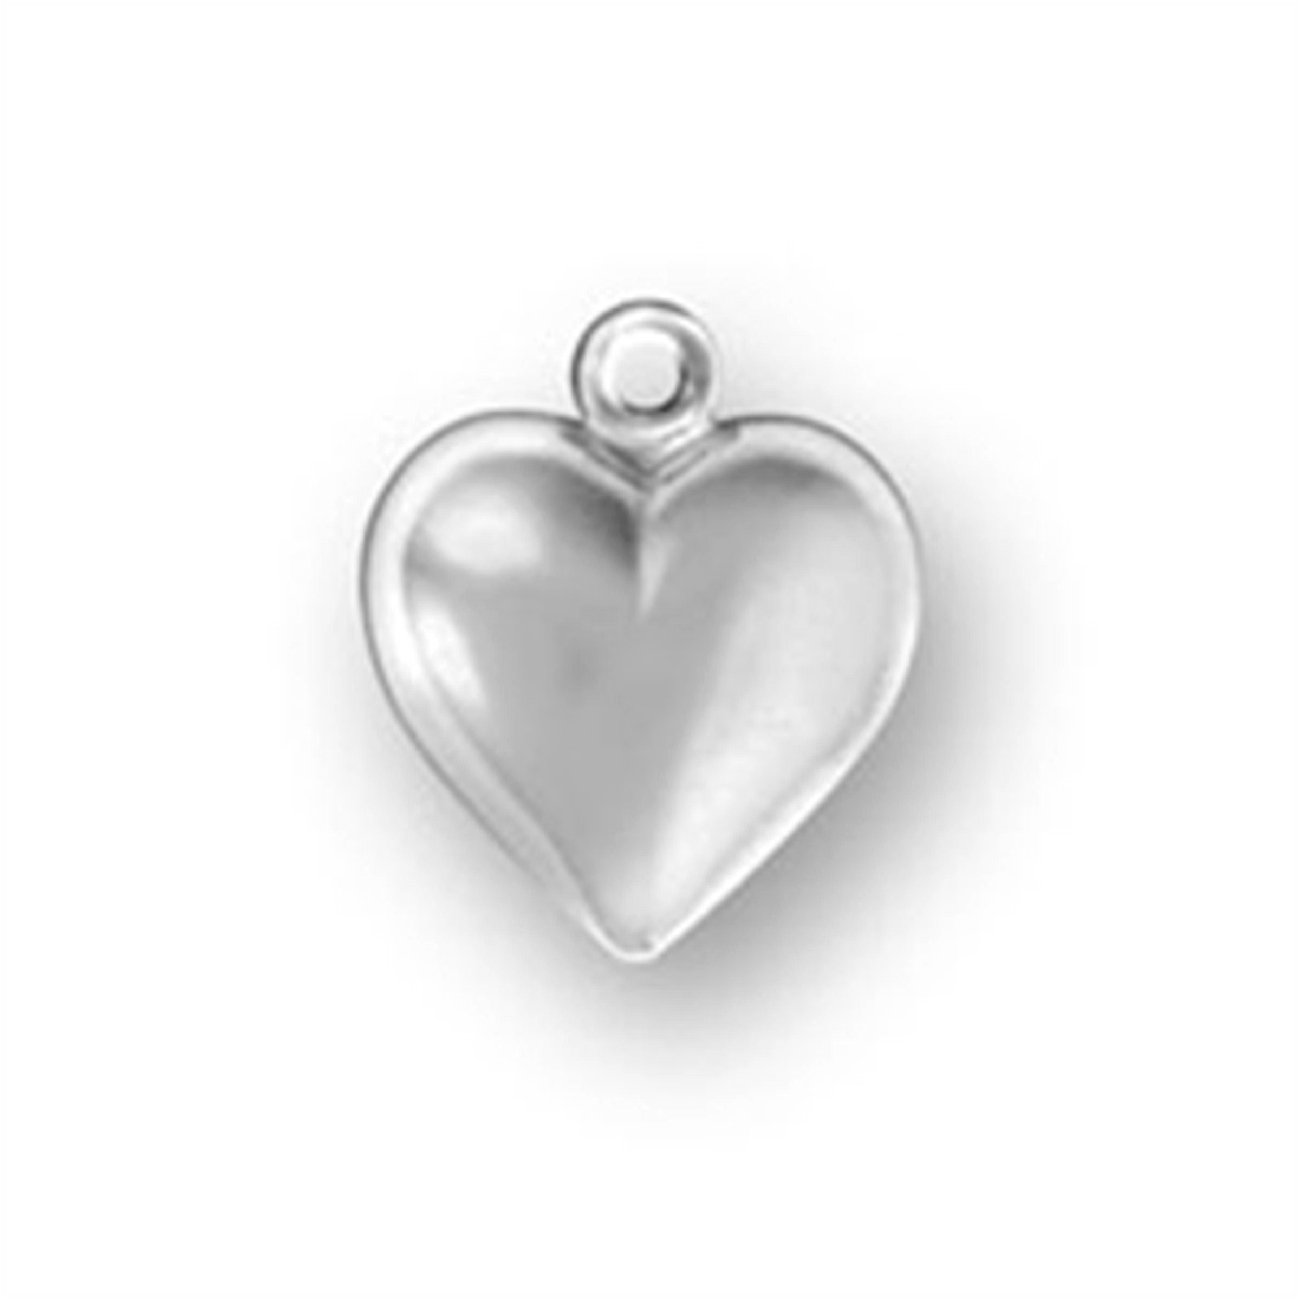 Sterling Silver 7 4.5mm Charm Bracelet With Attached Small Puffed Heart Charm